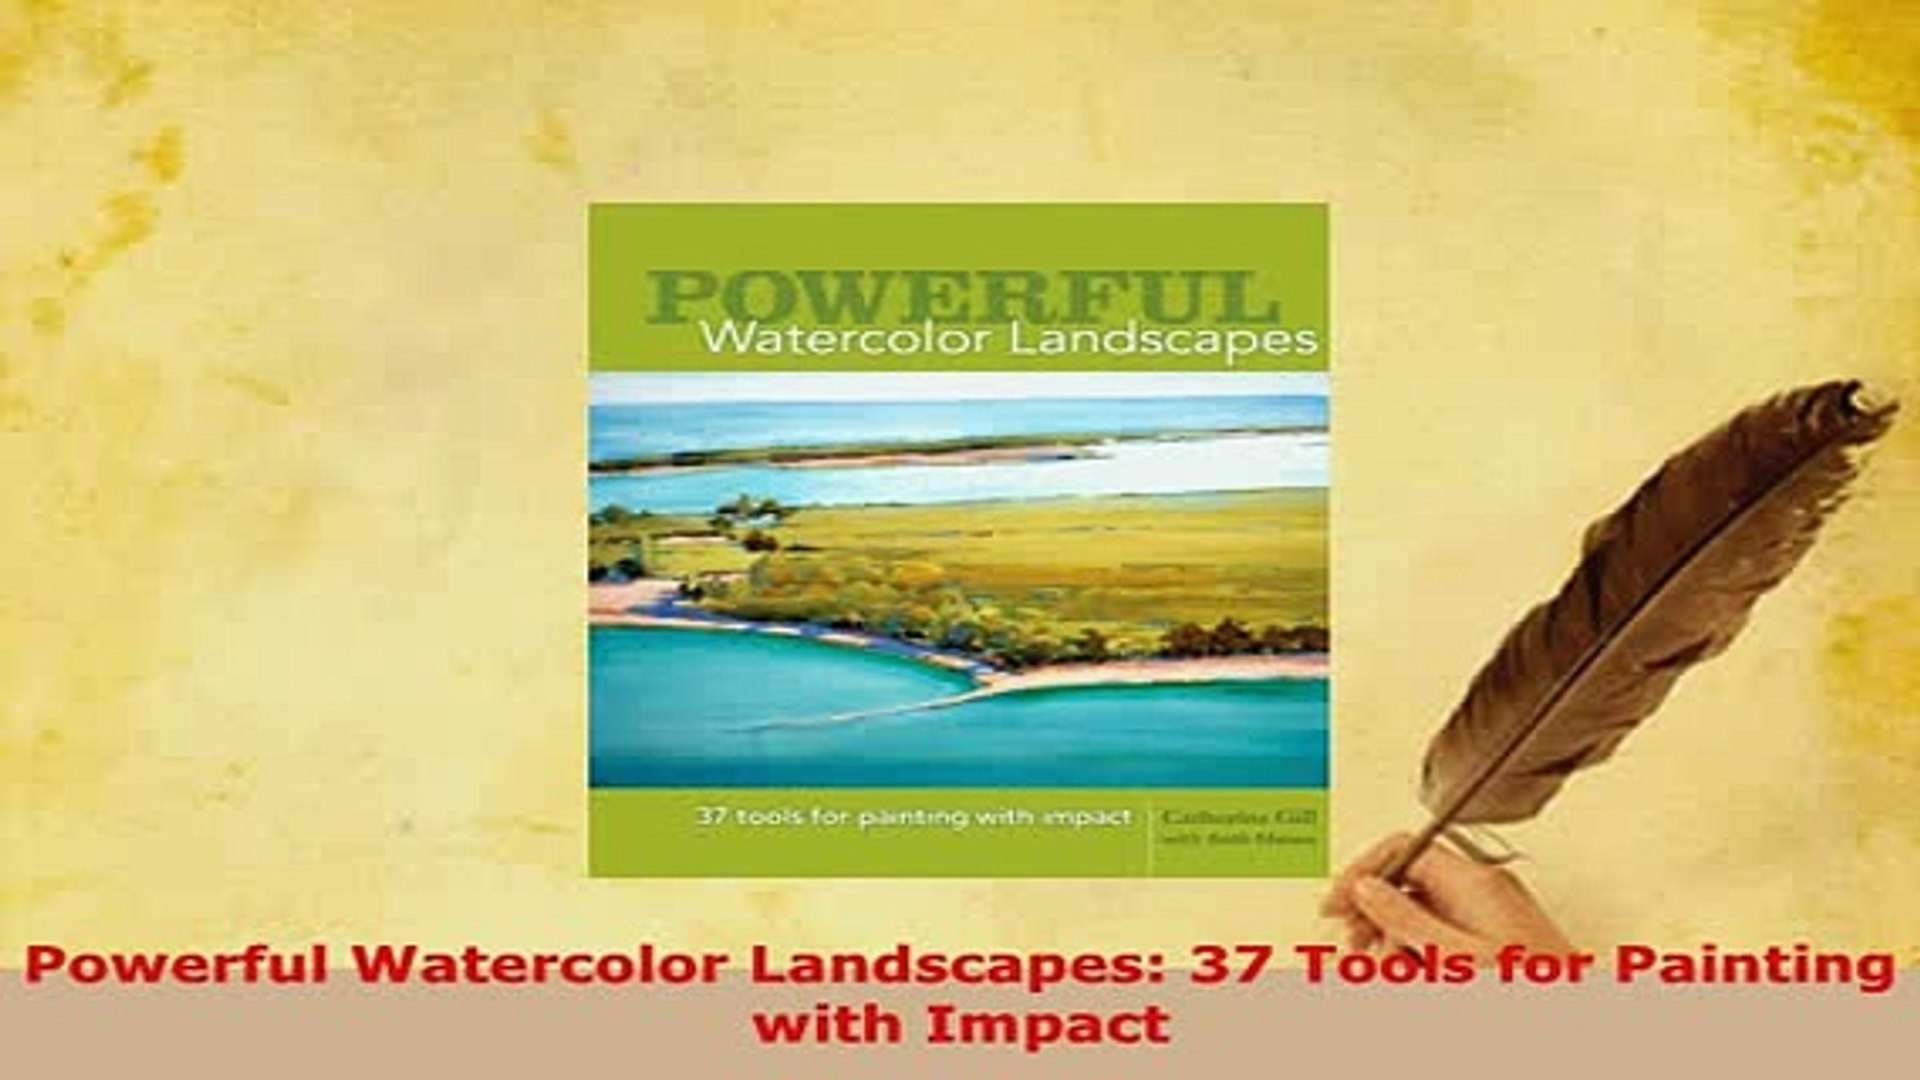 Tools for Painting with Impact Powerful Watercolor Landscapes